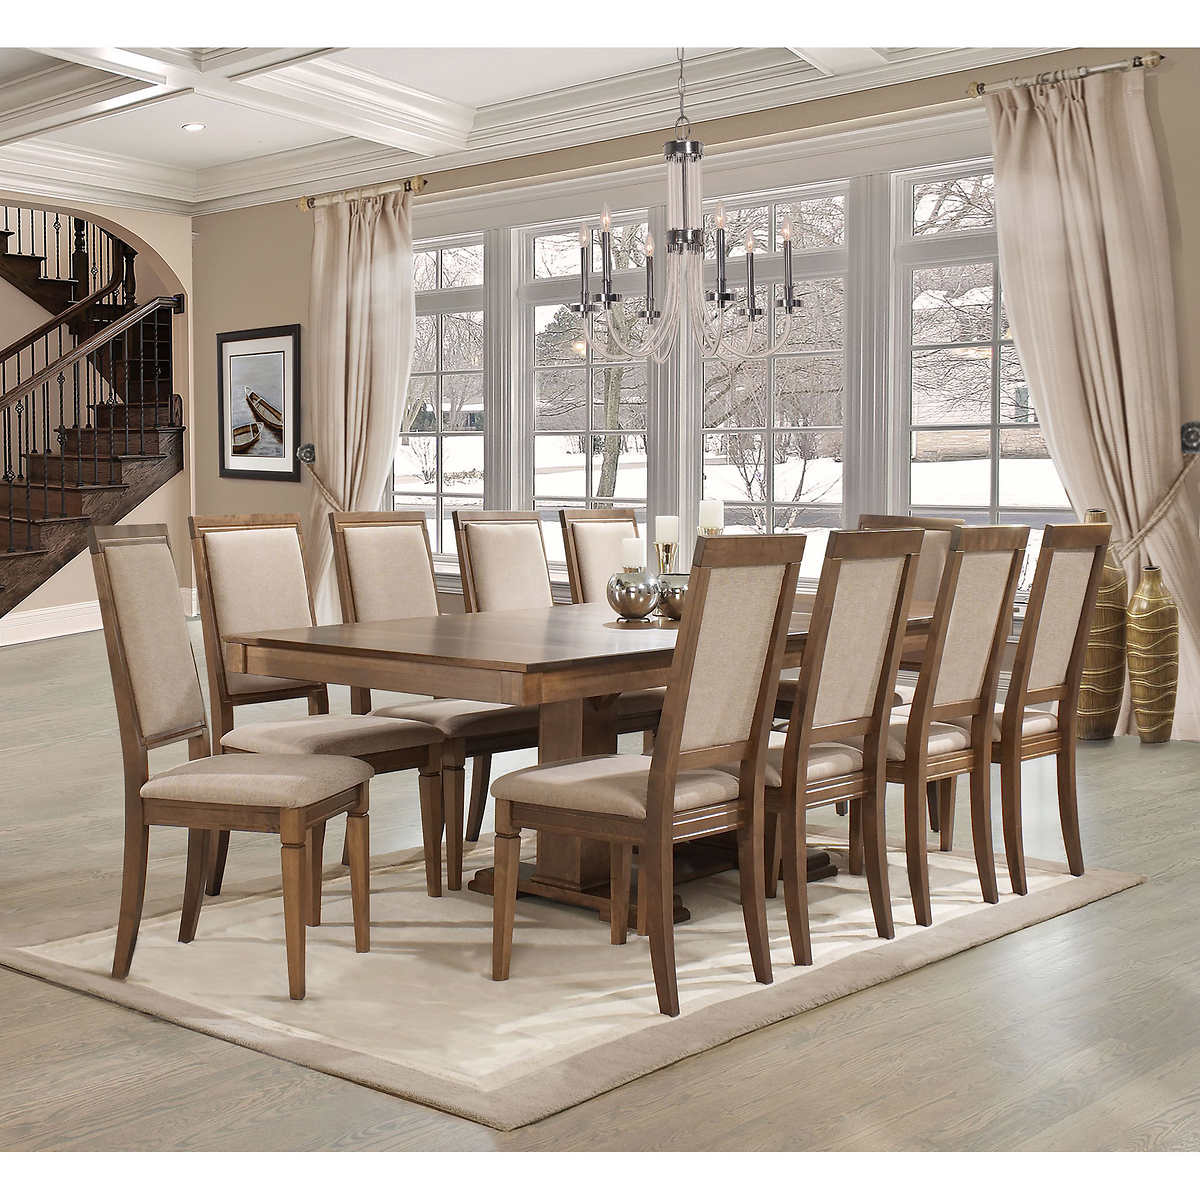 Manchester 11 Piece Dining Set Costco, Costco Dining Room Sets